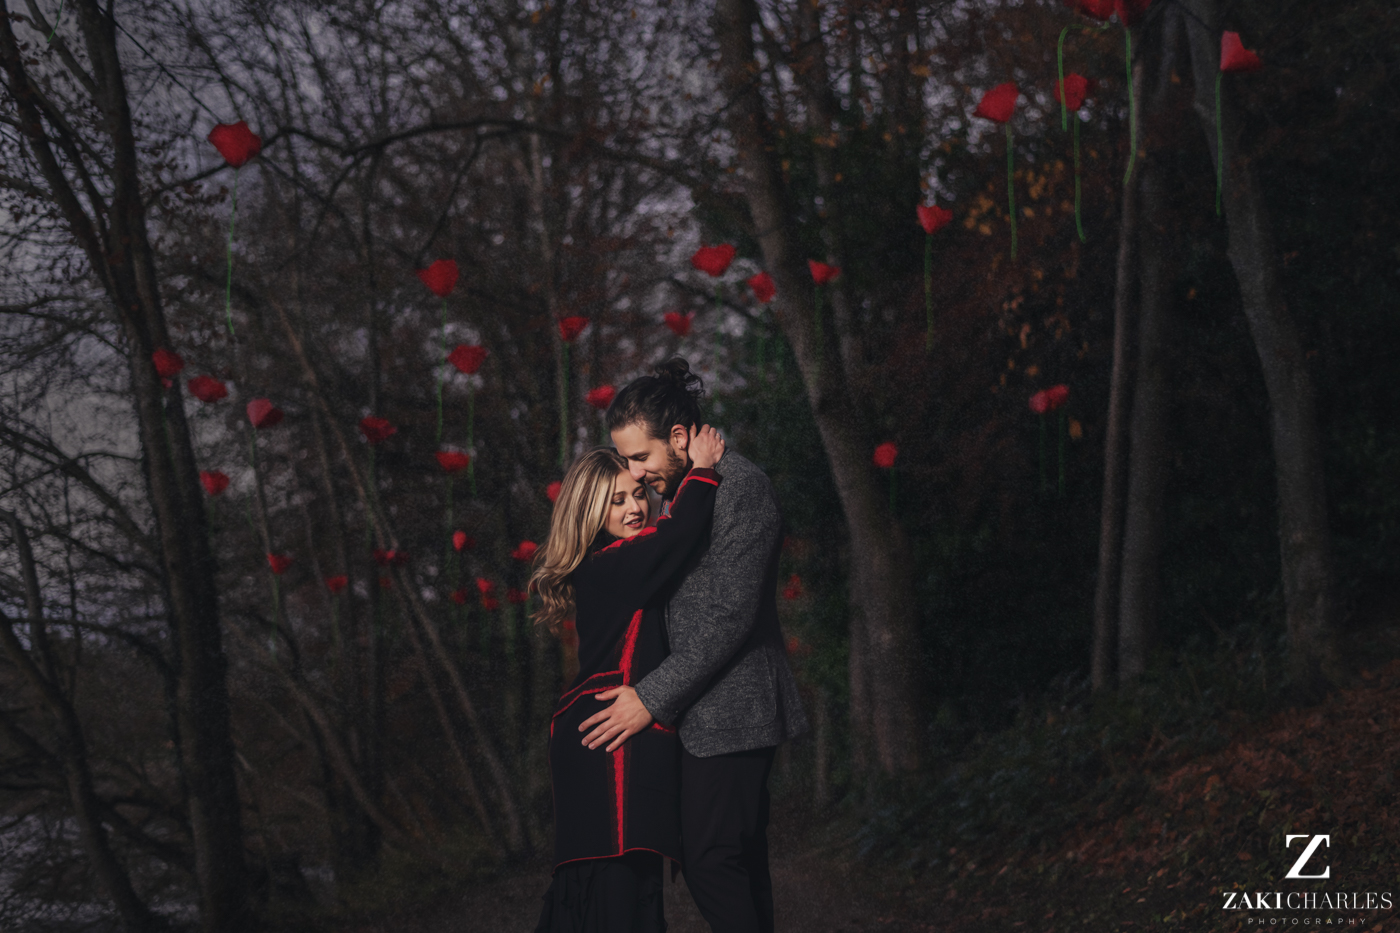 Blenheim Palace Engagement Session, AJ and Yannis fine art photography, Zaki Charles 9